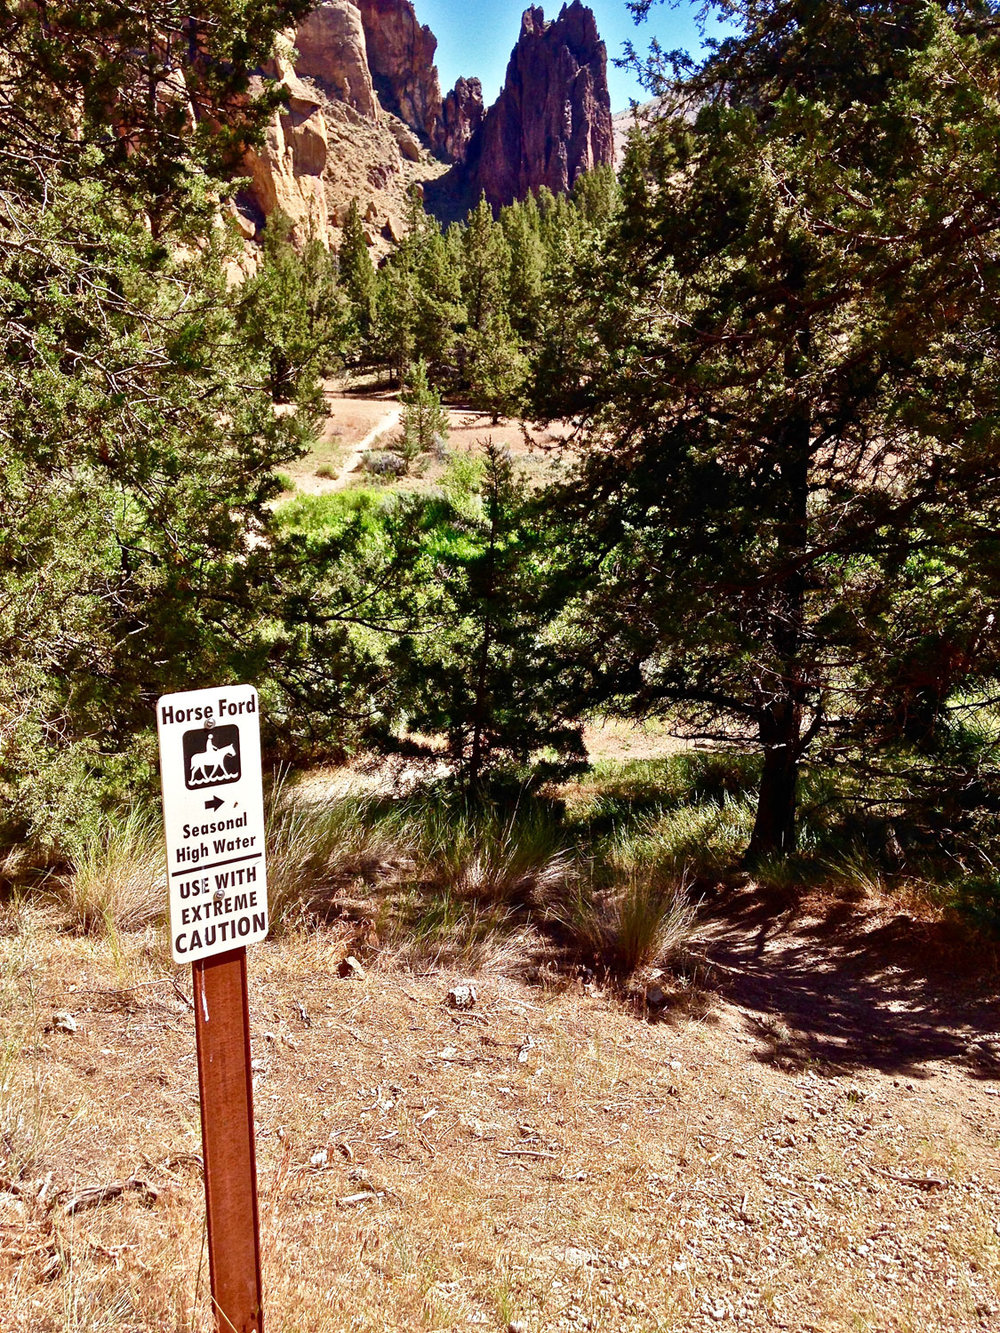 horse ford sign on Wolf Tree Trail at Smith Rock State Park